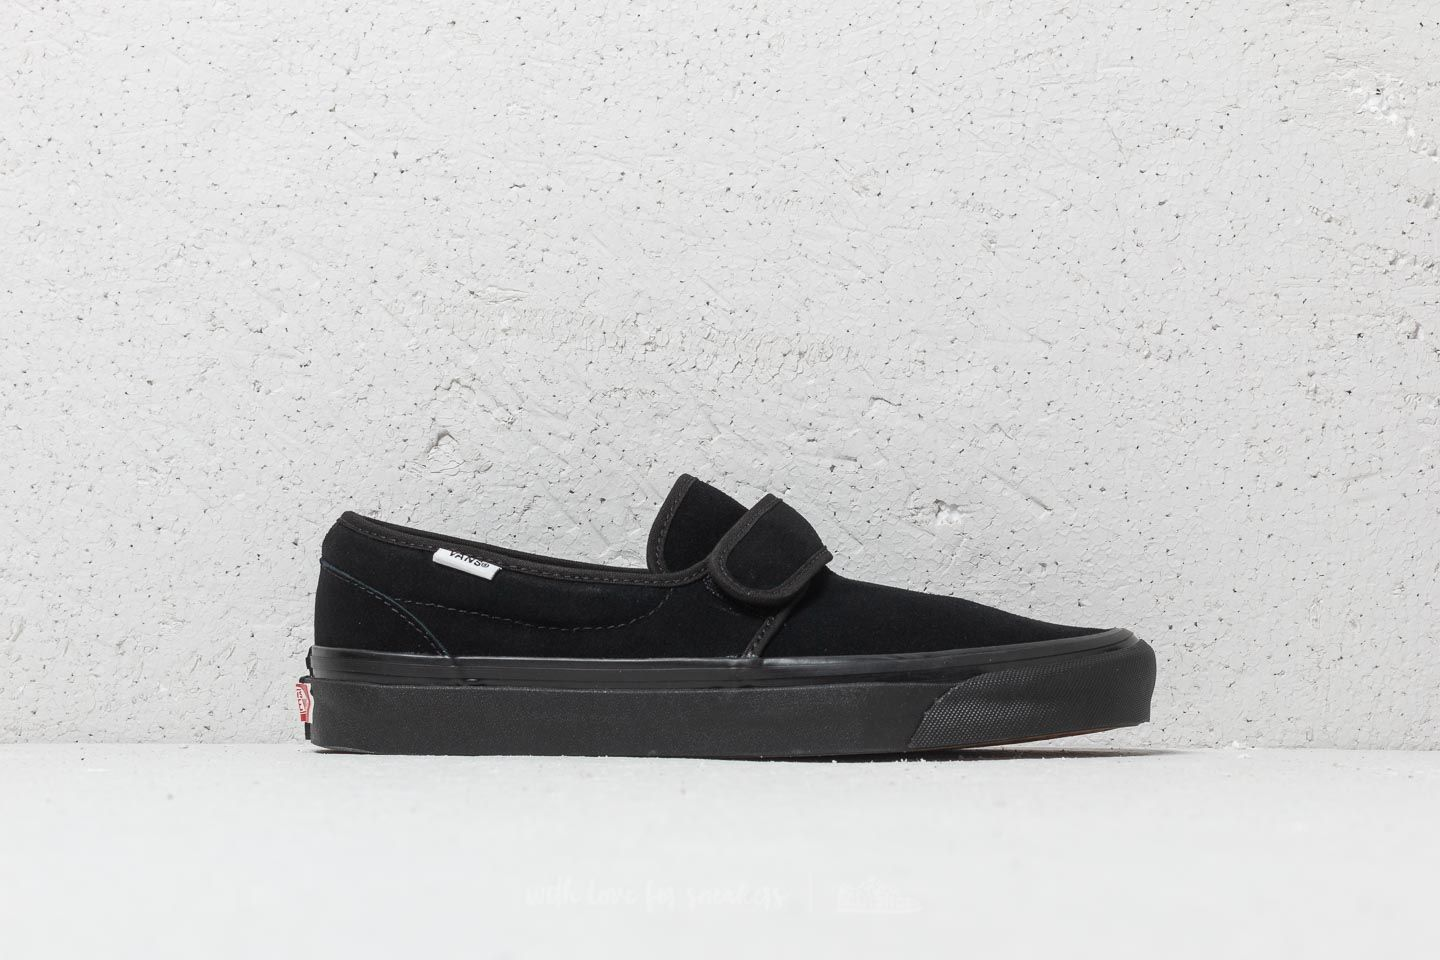 39fd9691fc7 Vans Slip-On 47 V DX (Anaheim Factory) OG Black at a great